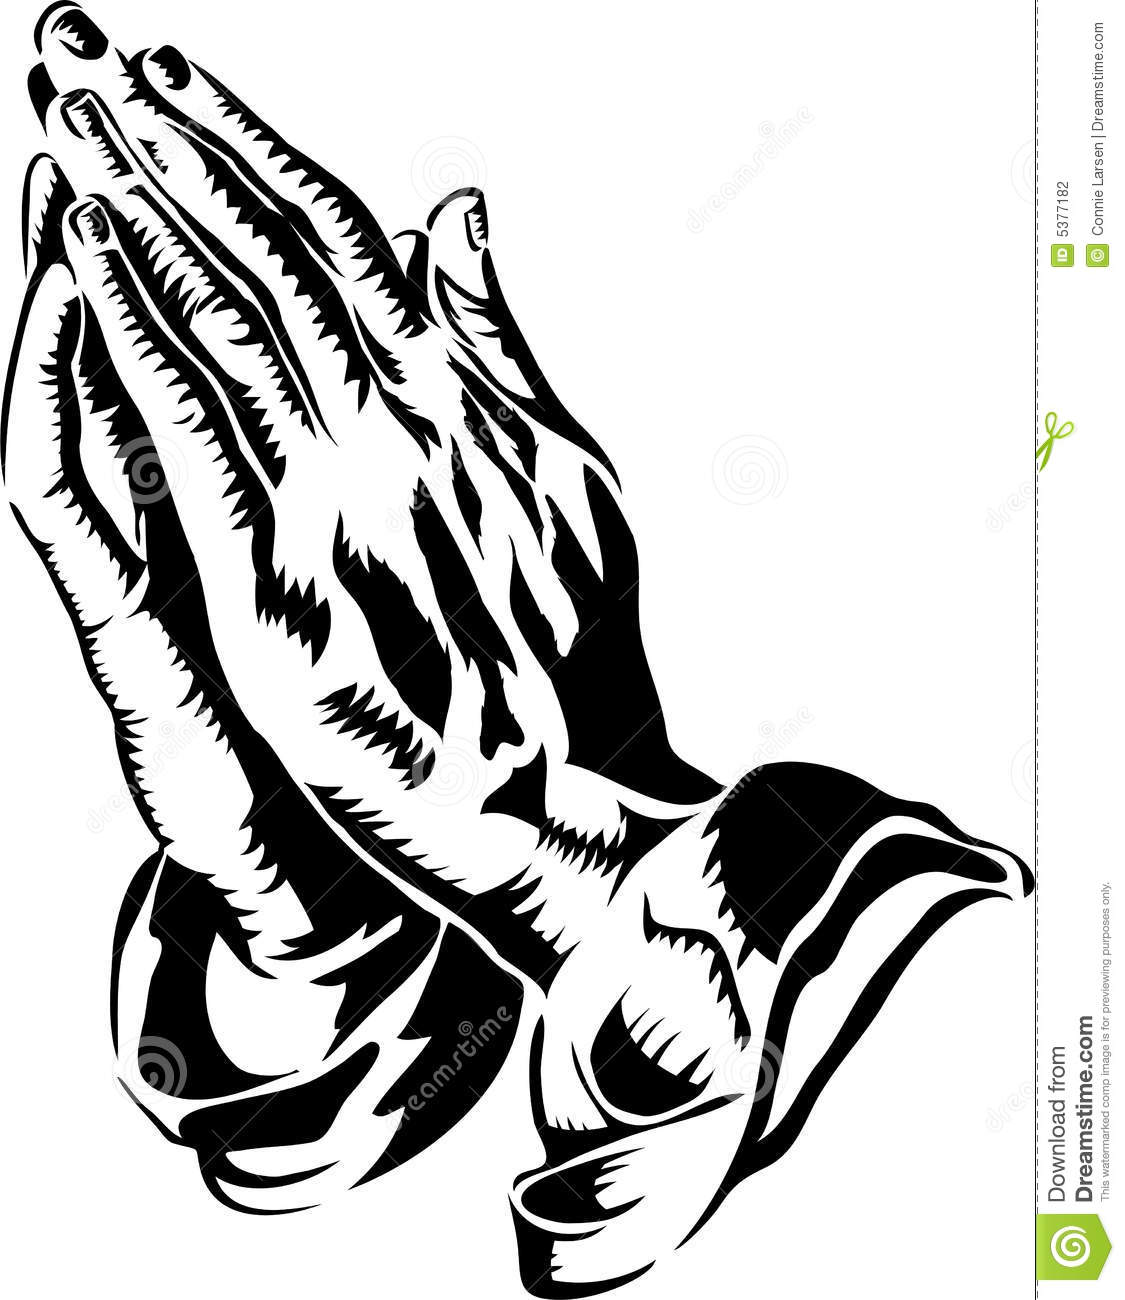 praying hands eps stock vector illustration of drawings 5377182